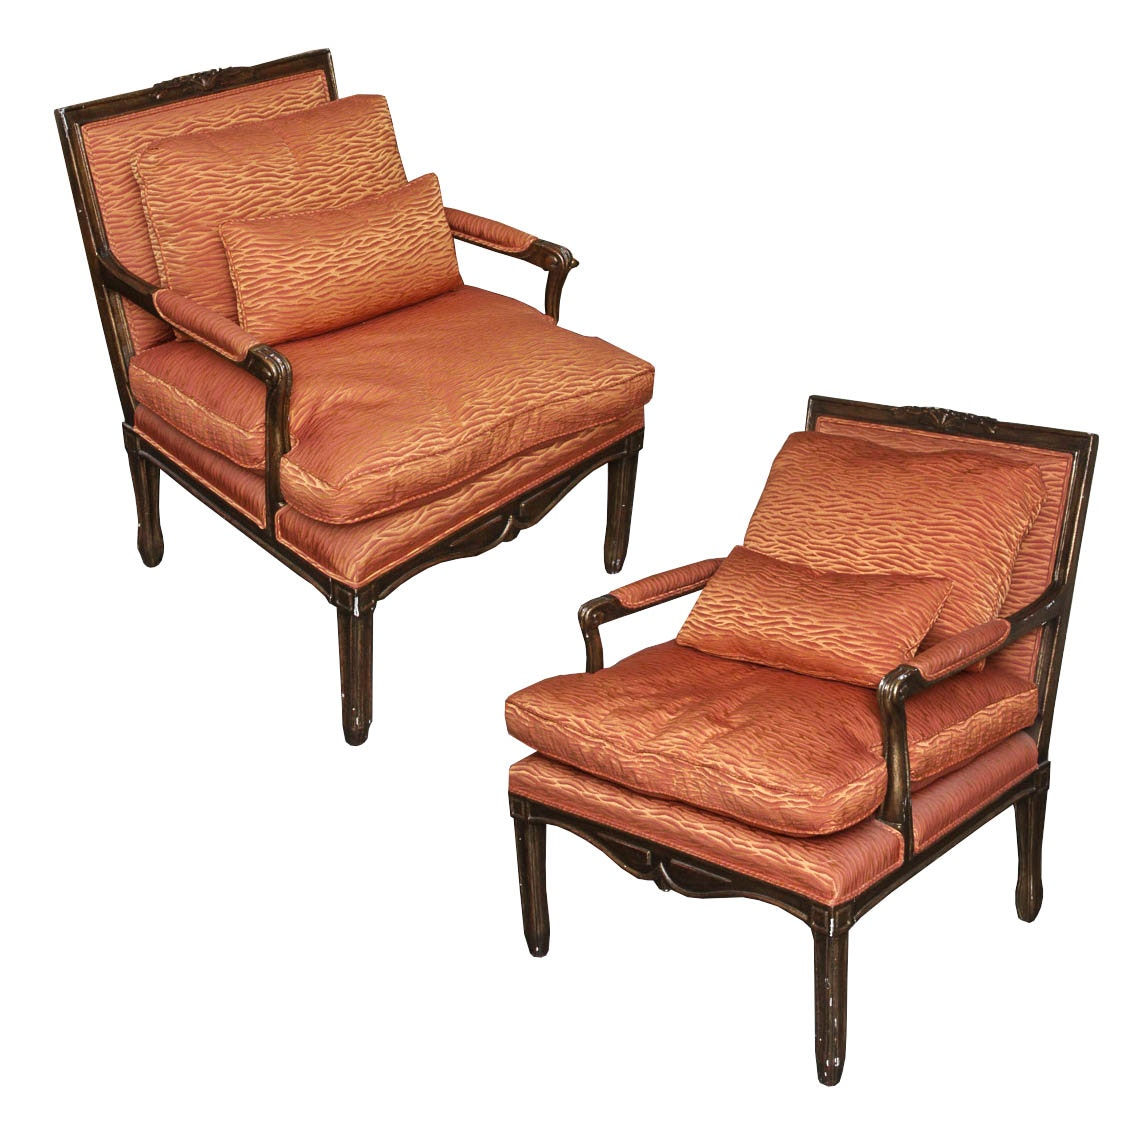 Minton-Spidell Armchairs with Throw Pillows